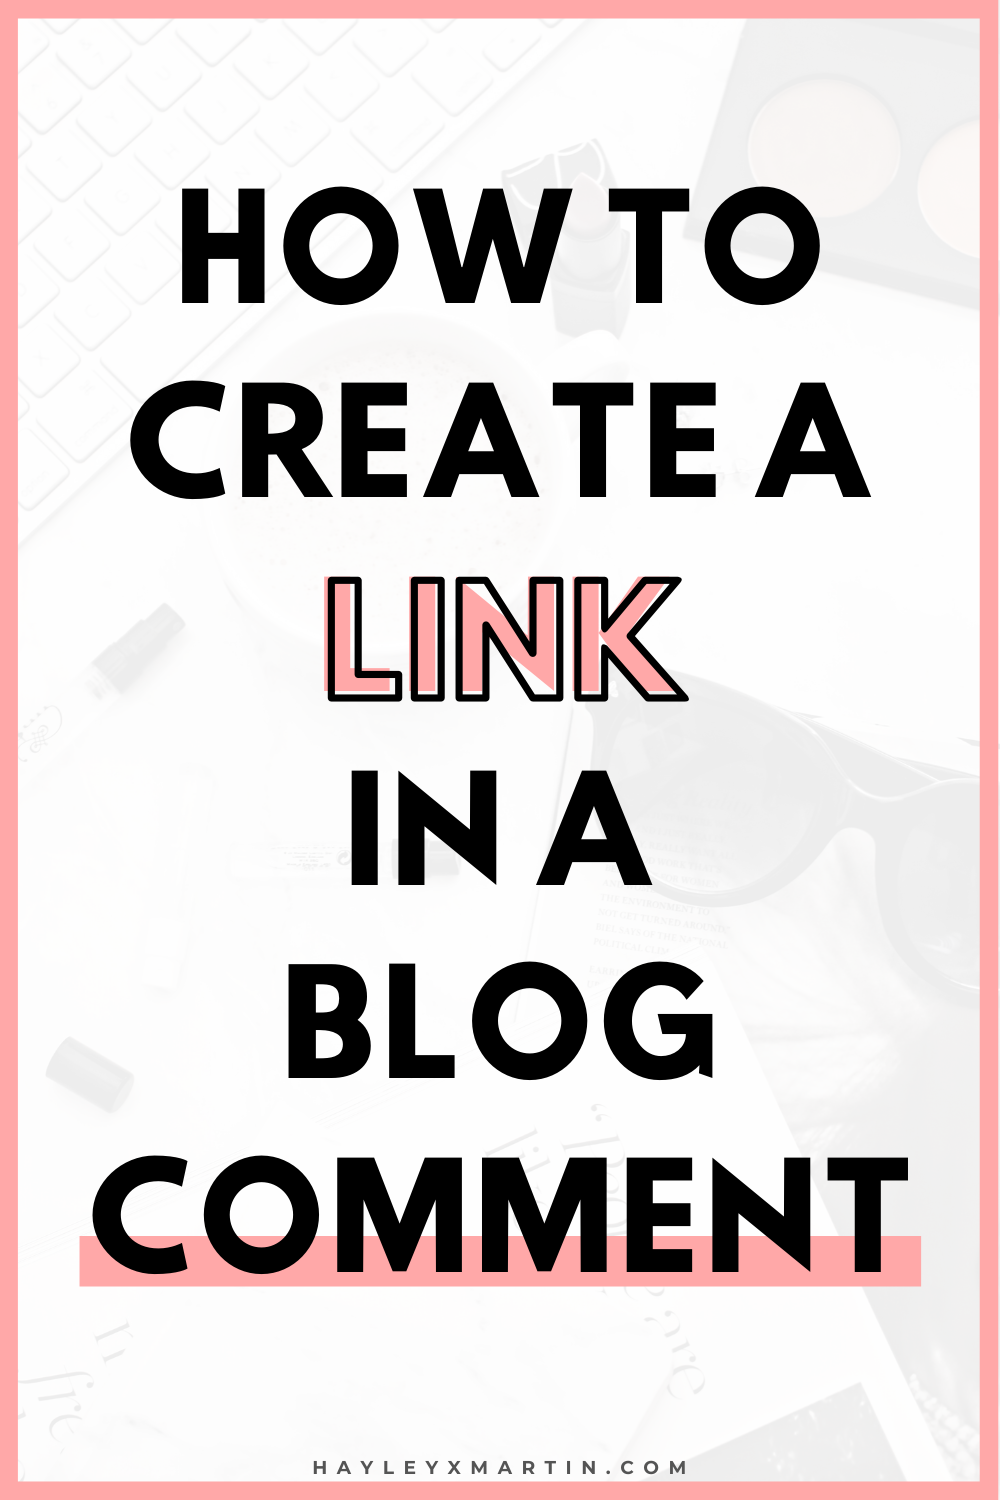 HOW TO CREATE A LINK IN A BLOG COMMENT | HAYLEYXMARTIN